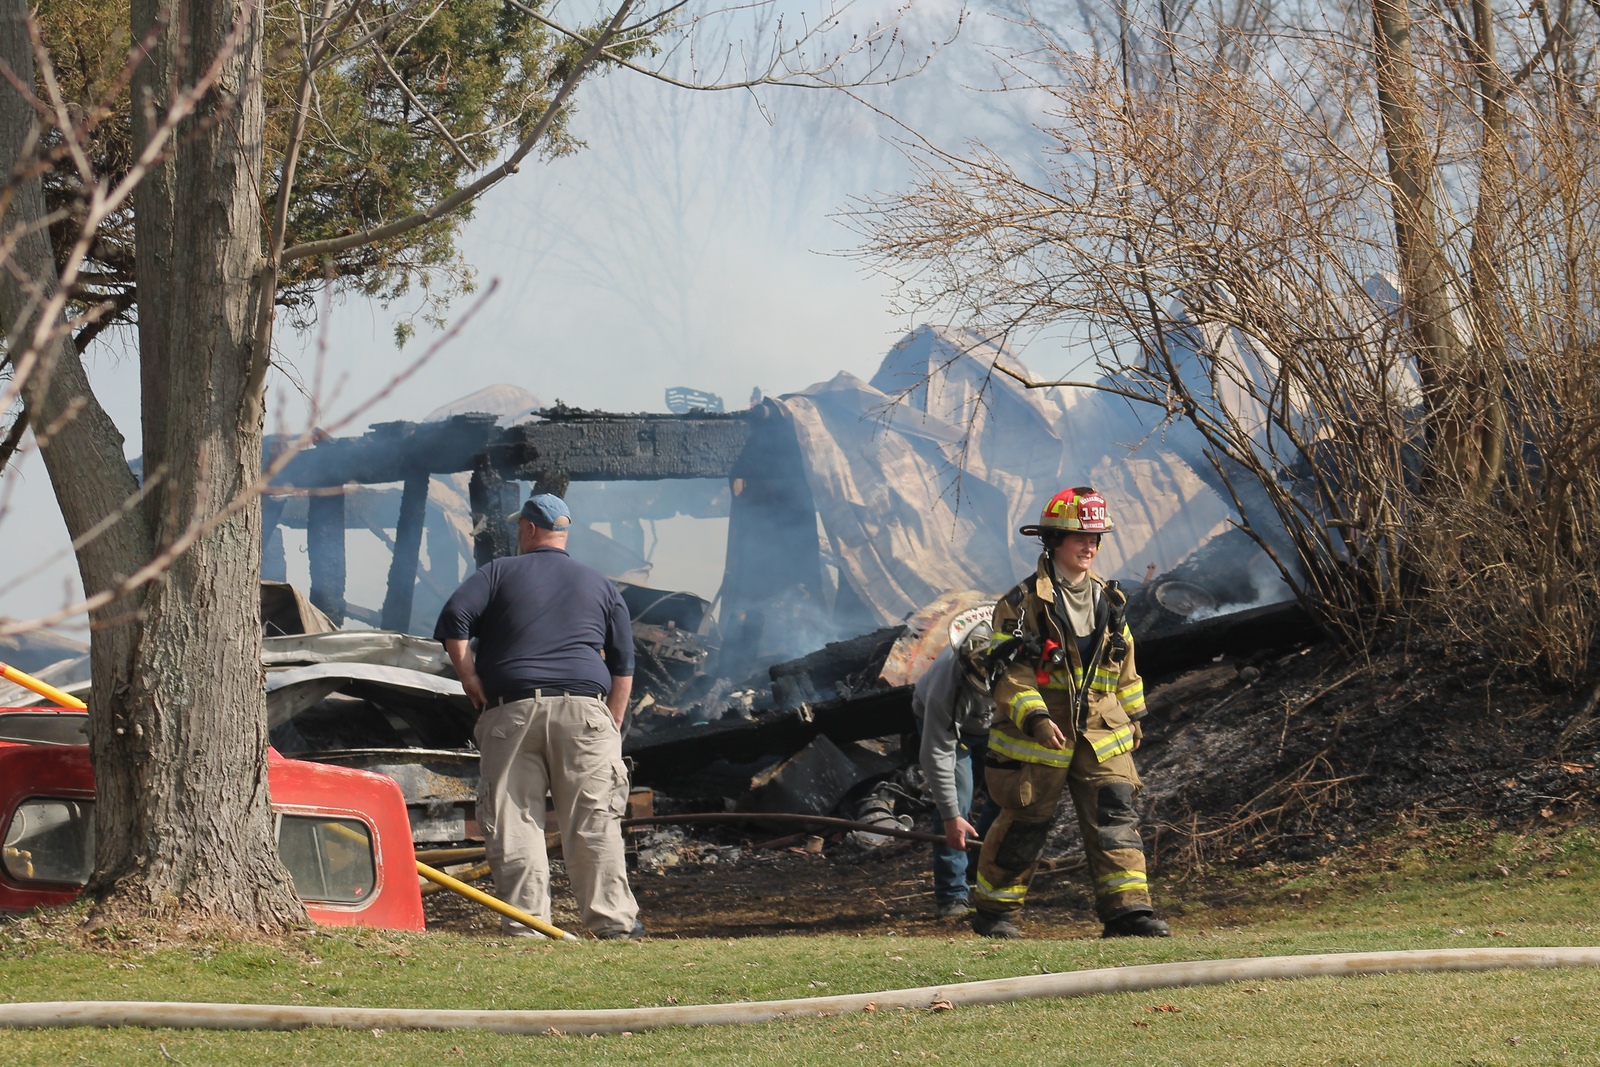 LAWRENCE PANTAGES / GAZETTE A structure called a bank barn was destroyed by fire at 1 p.m. at 792 Ridgewood Road in Sharon Township near the intersection of State Road. Sharon Township Chief Rob Haas estimated the loss at $80,000 to $100,000. He said the 40-by-60 foot barn was used for storage and possibly three vehicles were inside.